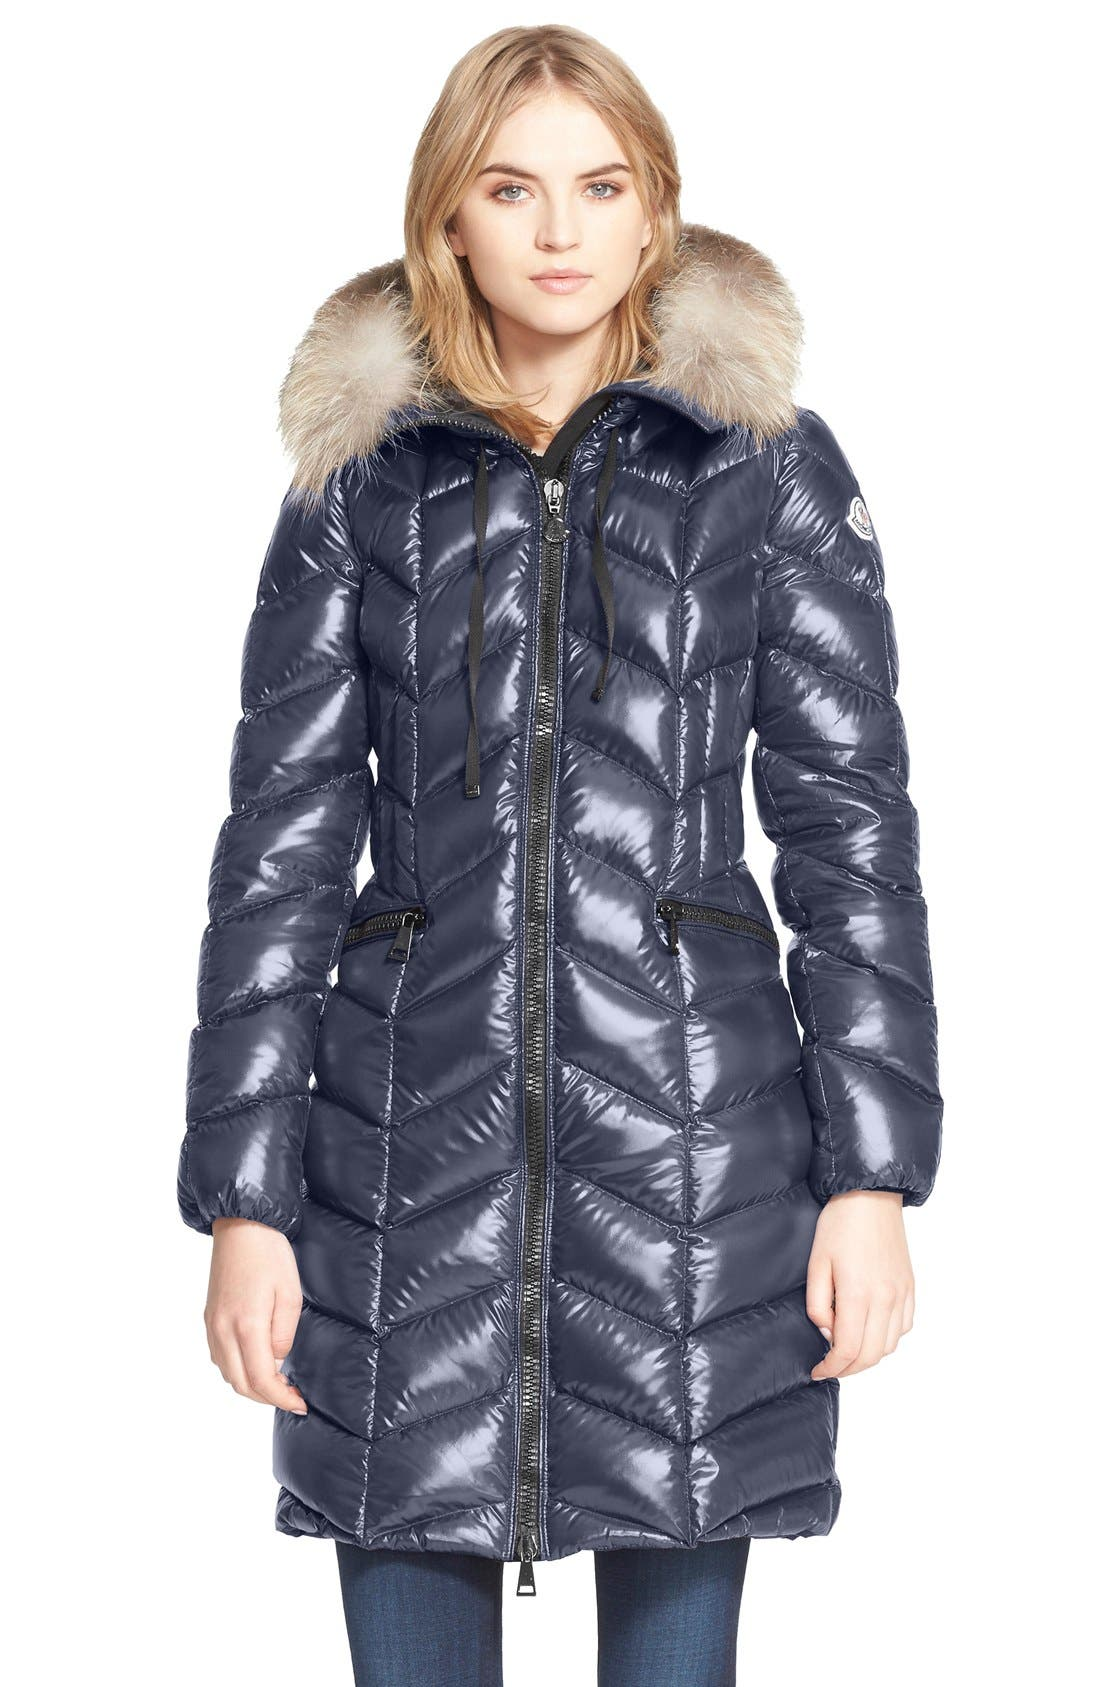 Alternate Image 1 Selected - Moncler 'Bellette' Lacquer Down Coat with Genuine Fox Fur Ruff